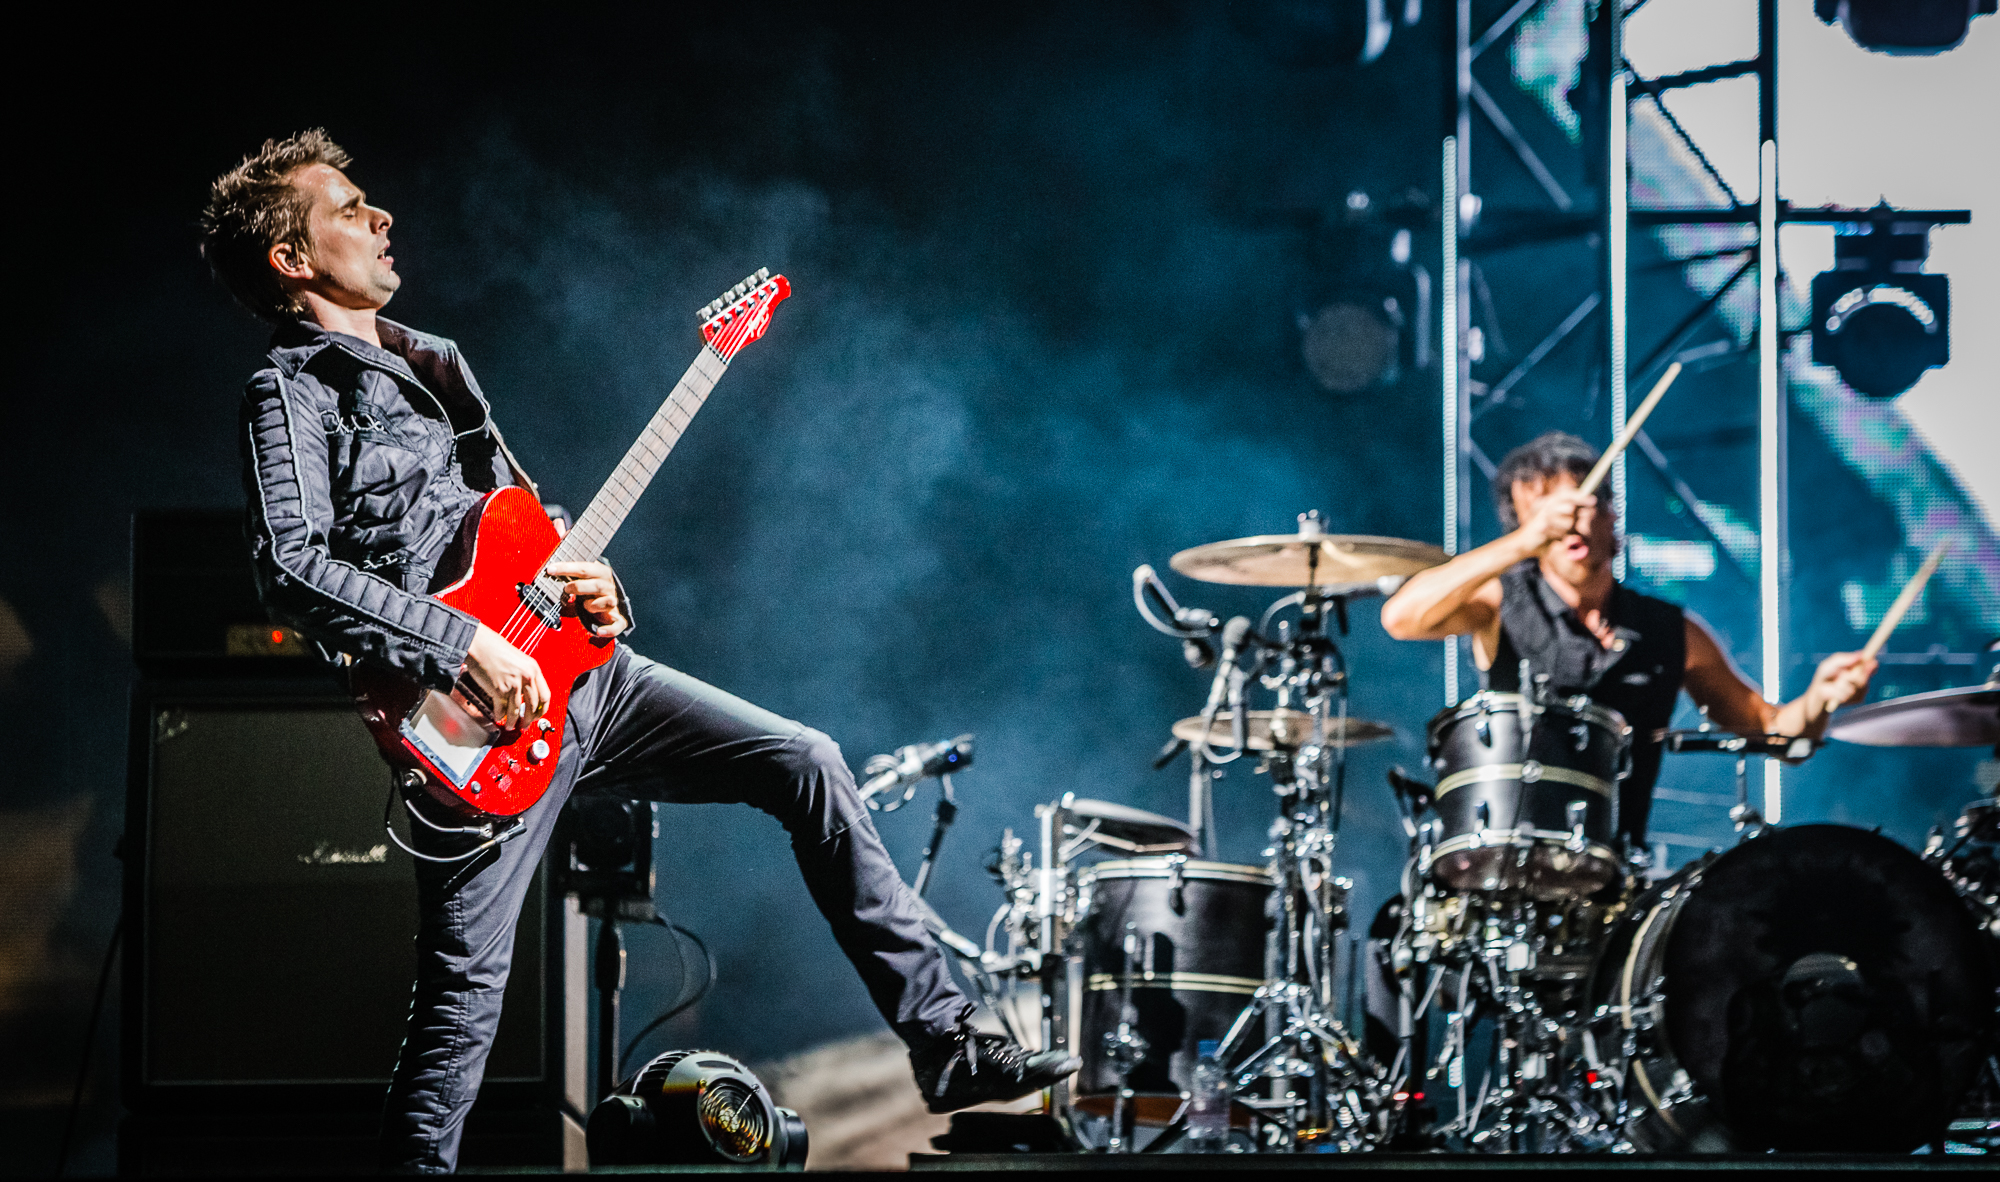 Muse @ Rock Werchter 2015 by 3FM